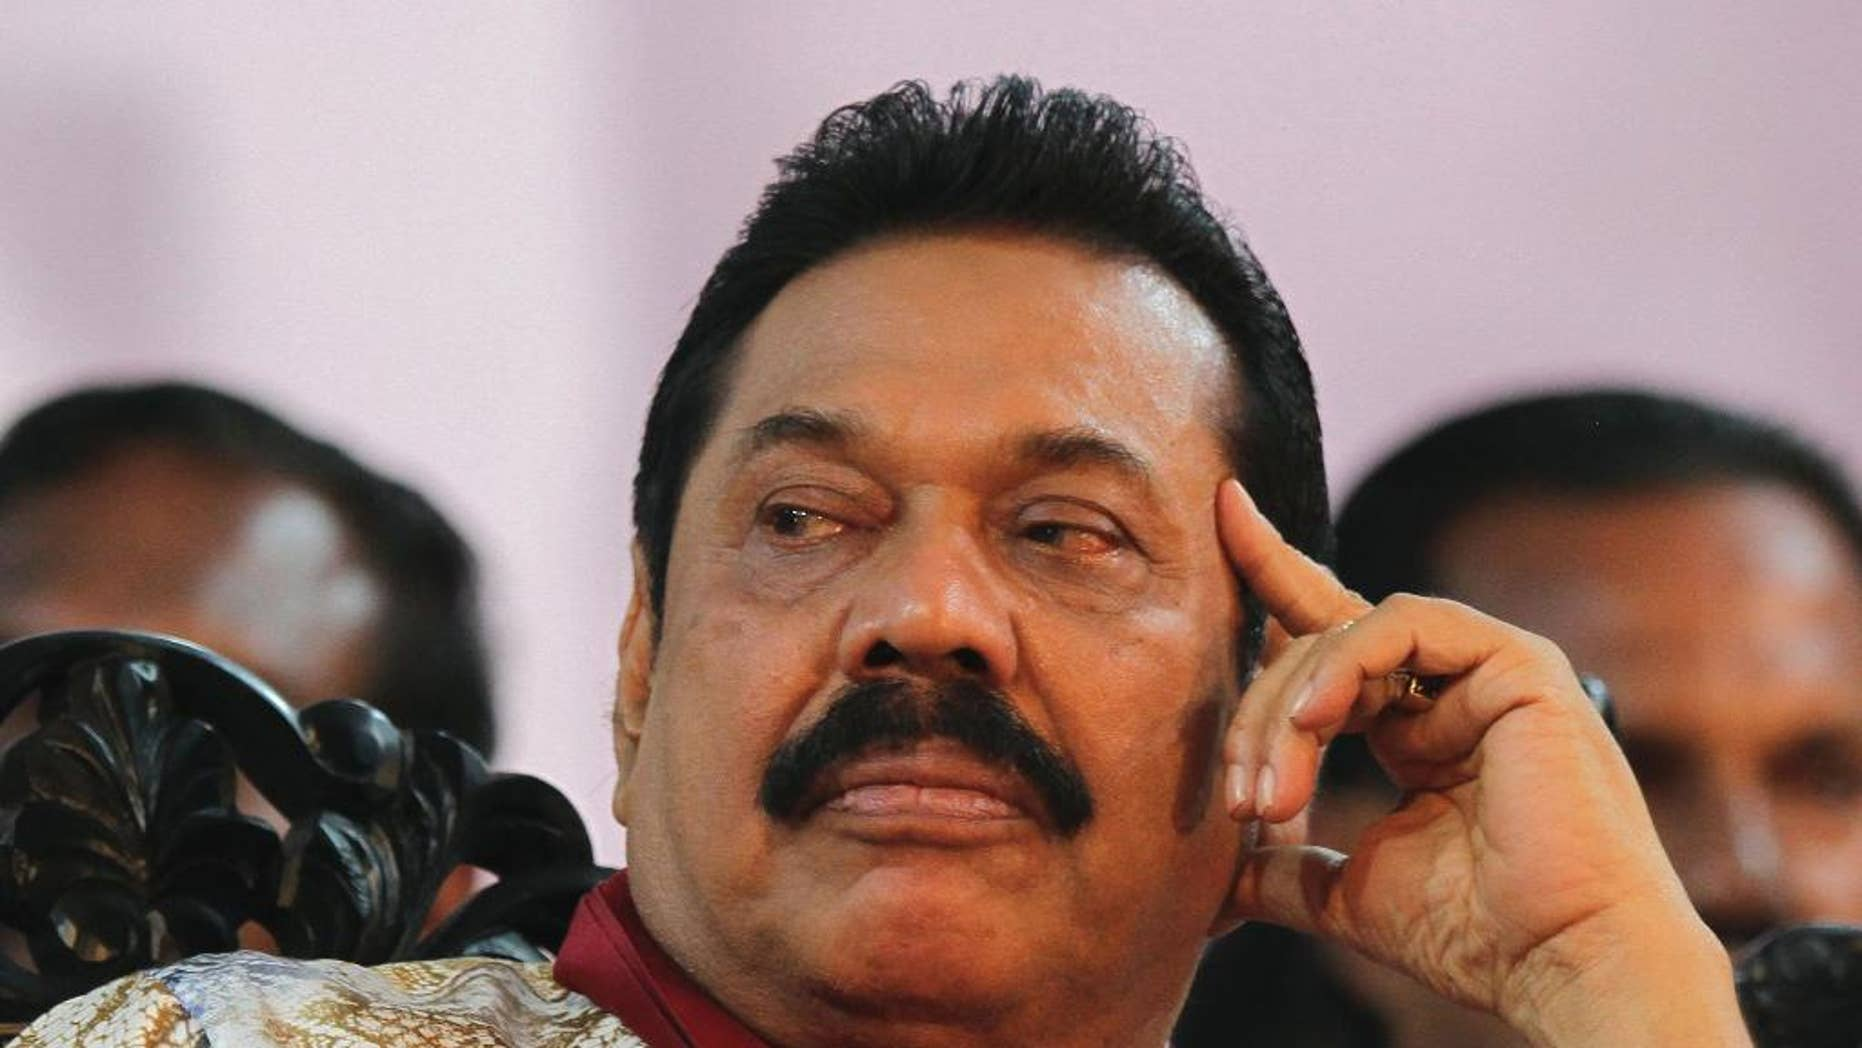 FILE - In this  Jan. 5, 2015 file photo, then-Sri Lankan President Mahinda Rajapaksa attends his final public rally for the presidential elections in Kesbewa, southeast of Colombo, Sri Lanka. Mangala Samaraweera, the spokesman for new President Maithripala Sirisena, said Sunday, Jan. 11, 2015, Sri Lanka's new government will investigate an alleged attempt by former President Rajapaksa to stage a coup to stay in power when results showed he was losing last week's election. (AP Photo/Sanka Gayashan, File)